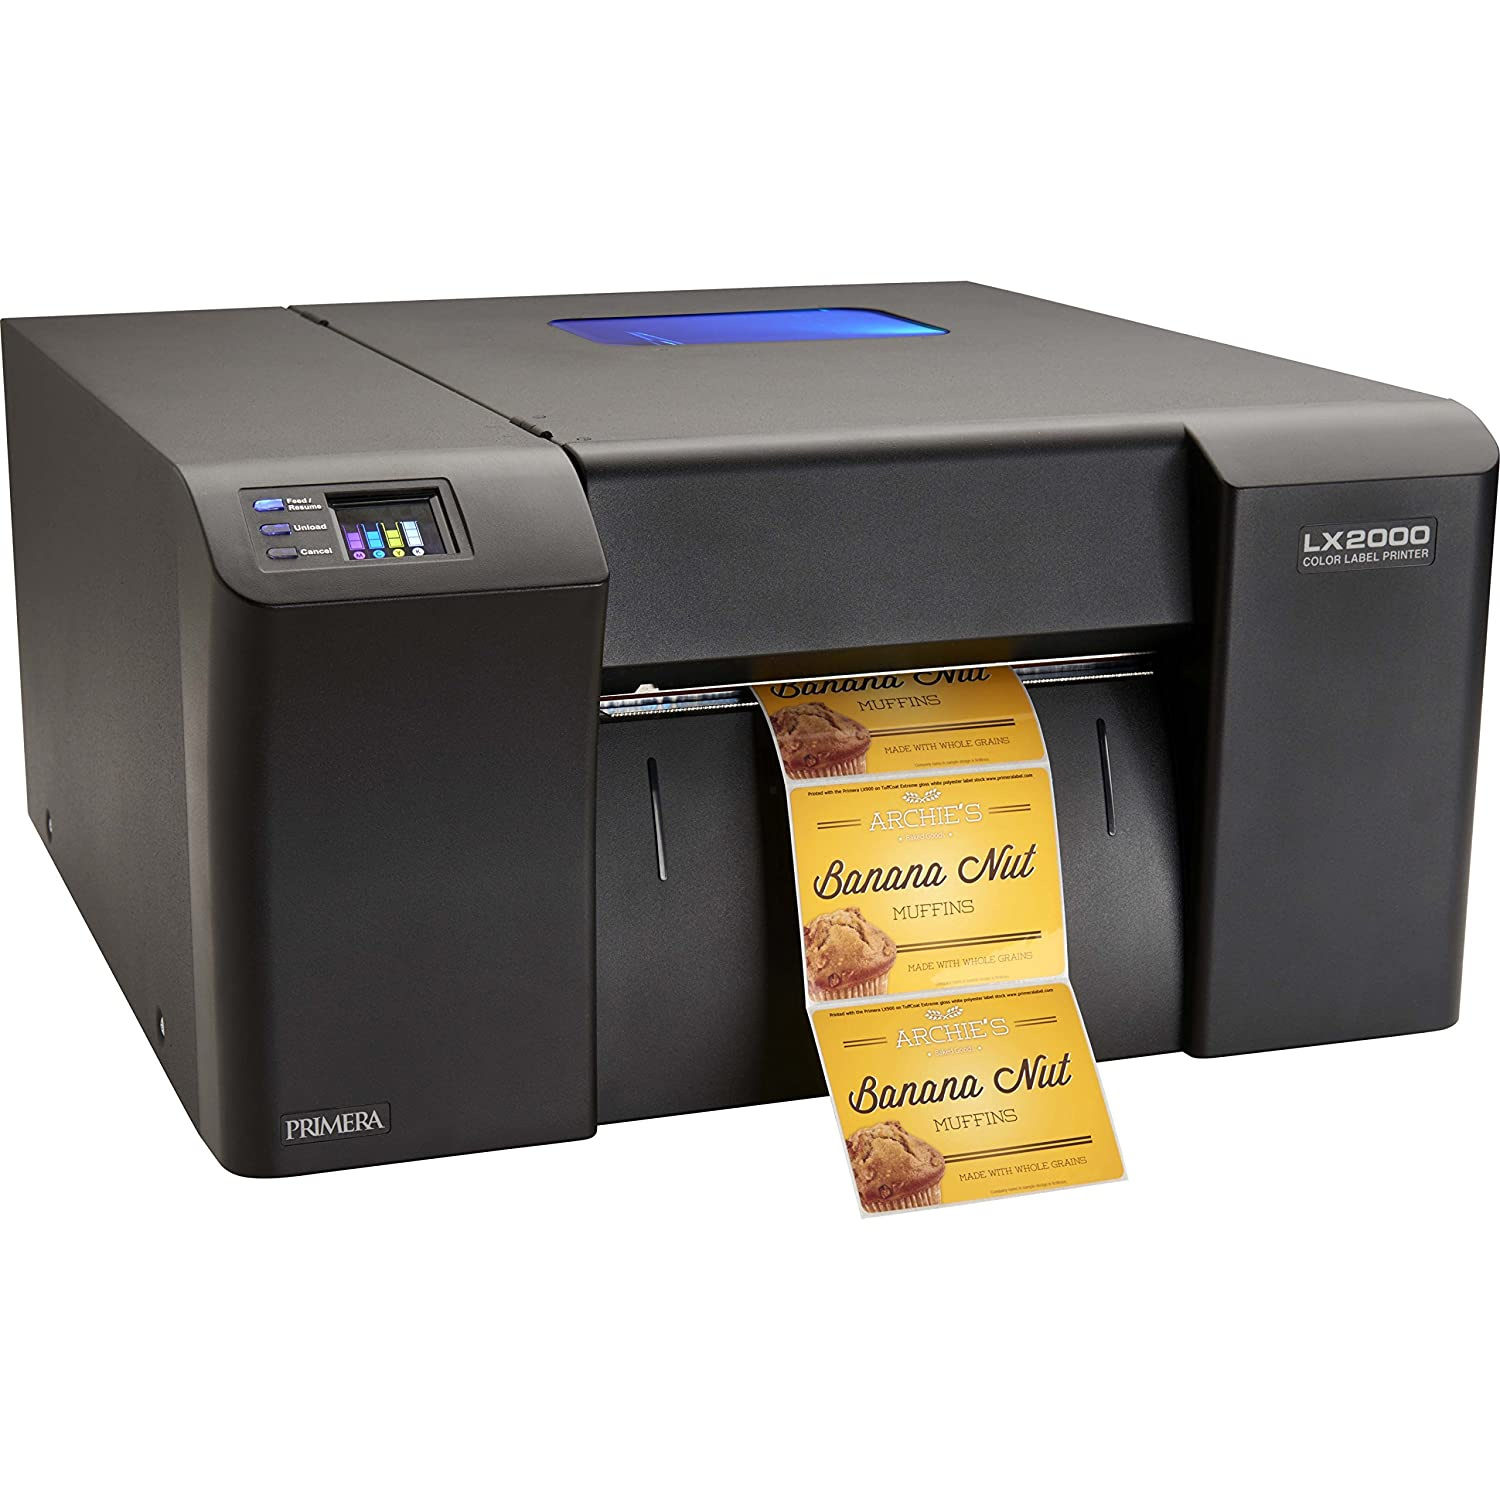 Primera LX2000 Color Label Printer, Print Your Own Short Run Product  Labels, Prints Up To 8 25